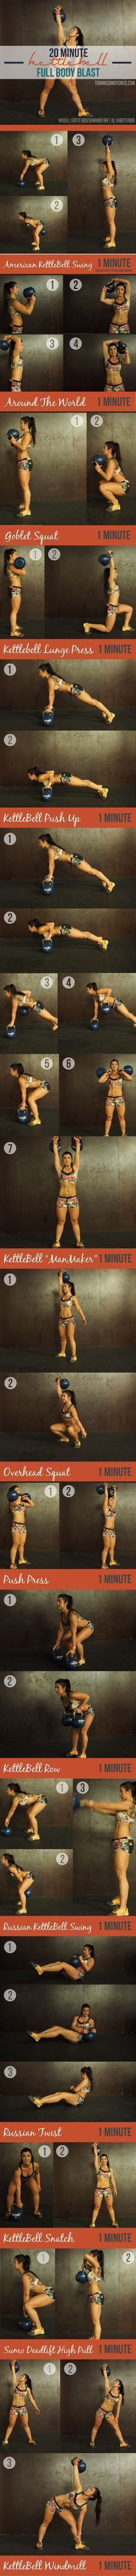 20 Minute Full Body Fat Loss Kettlebell Workout Circuit! Find more like this at gympins.com